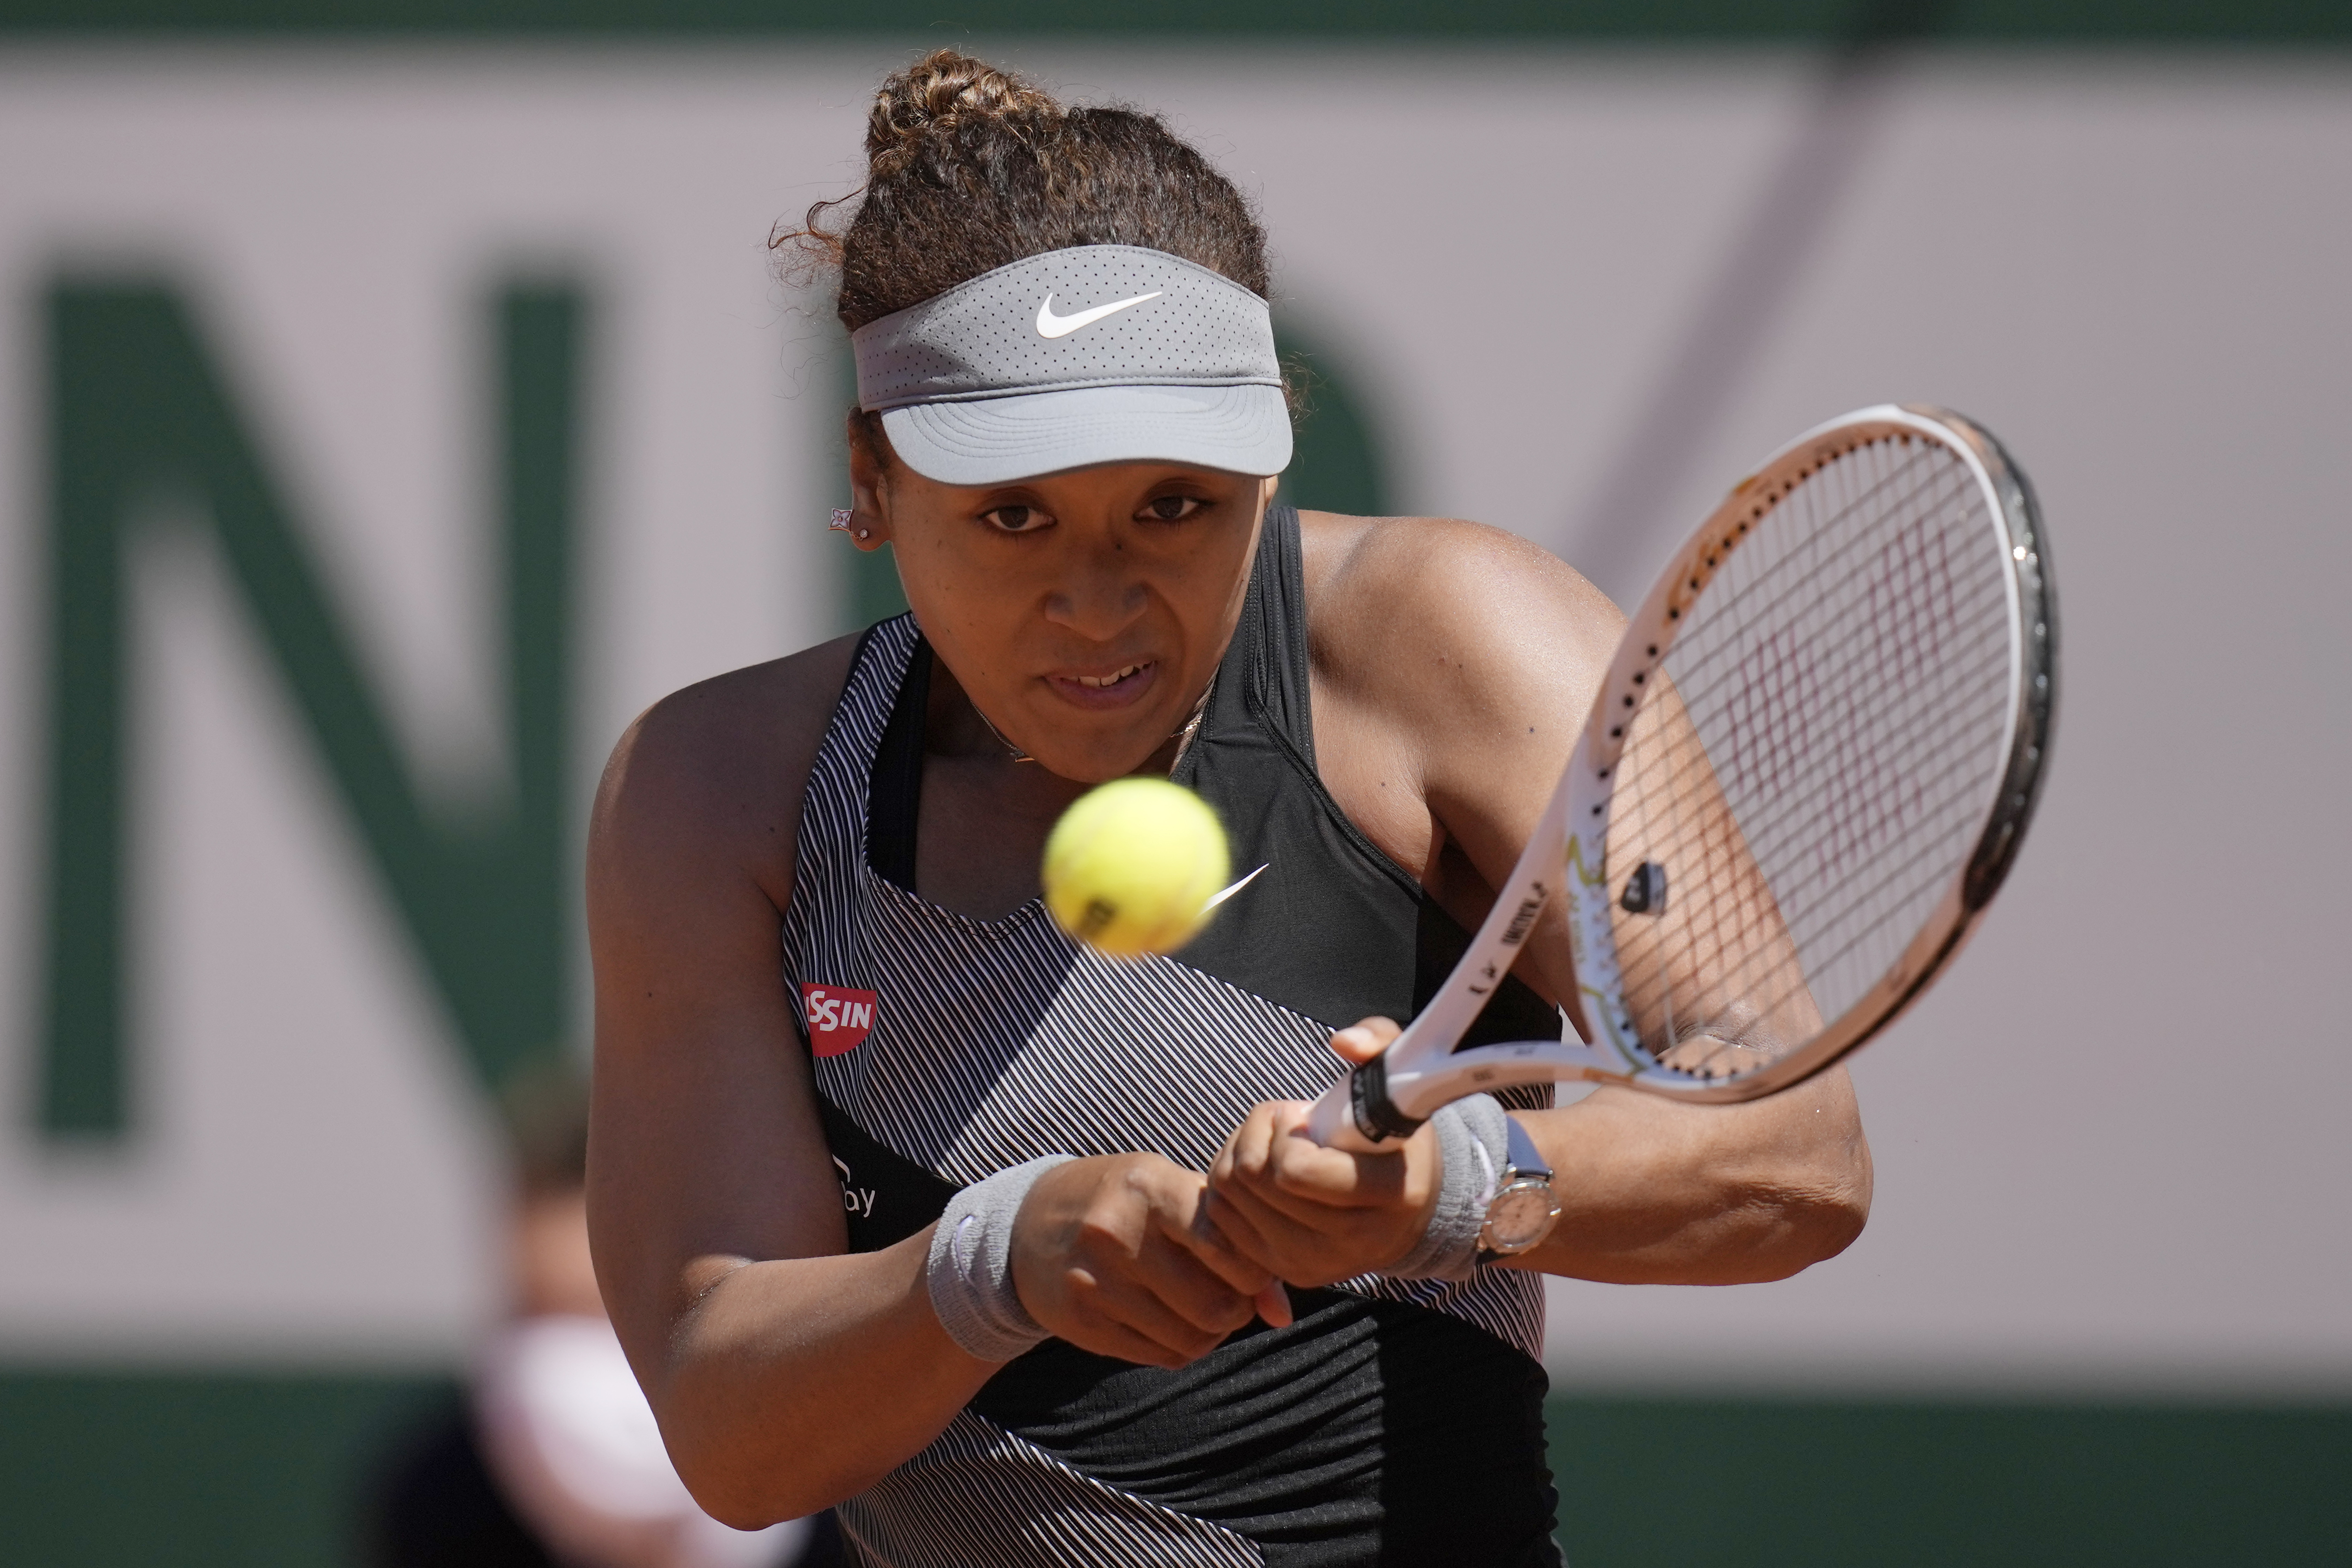 Japan's Naomi Osaka returns the ball to Romania's Patricia Maria Tig during their first round match of the French open tennis tournament at the Roland Garros stadium, in Paris, France, on May 30, 2021.